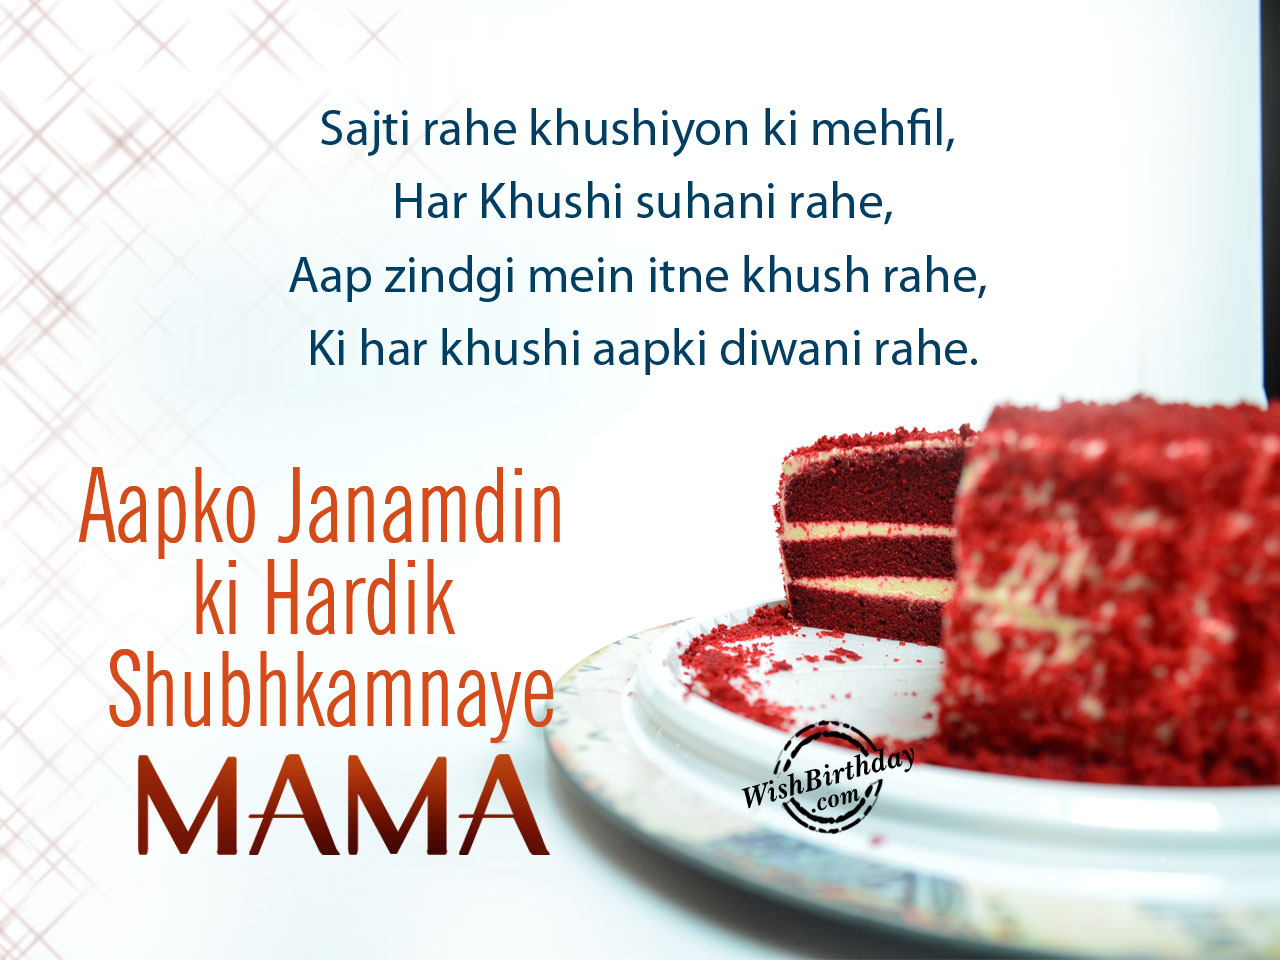 i wish you happy birthday quotes ; Mama-ji-Wishing-you-happy-birthday